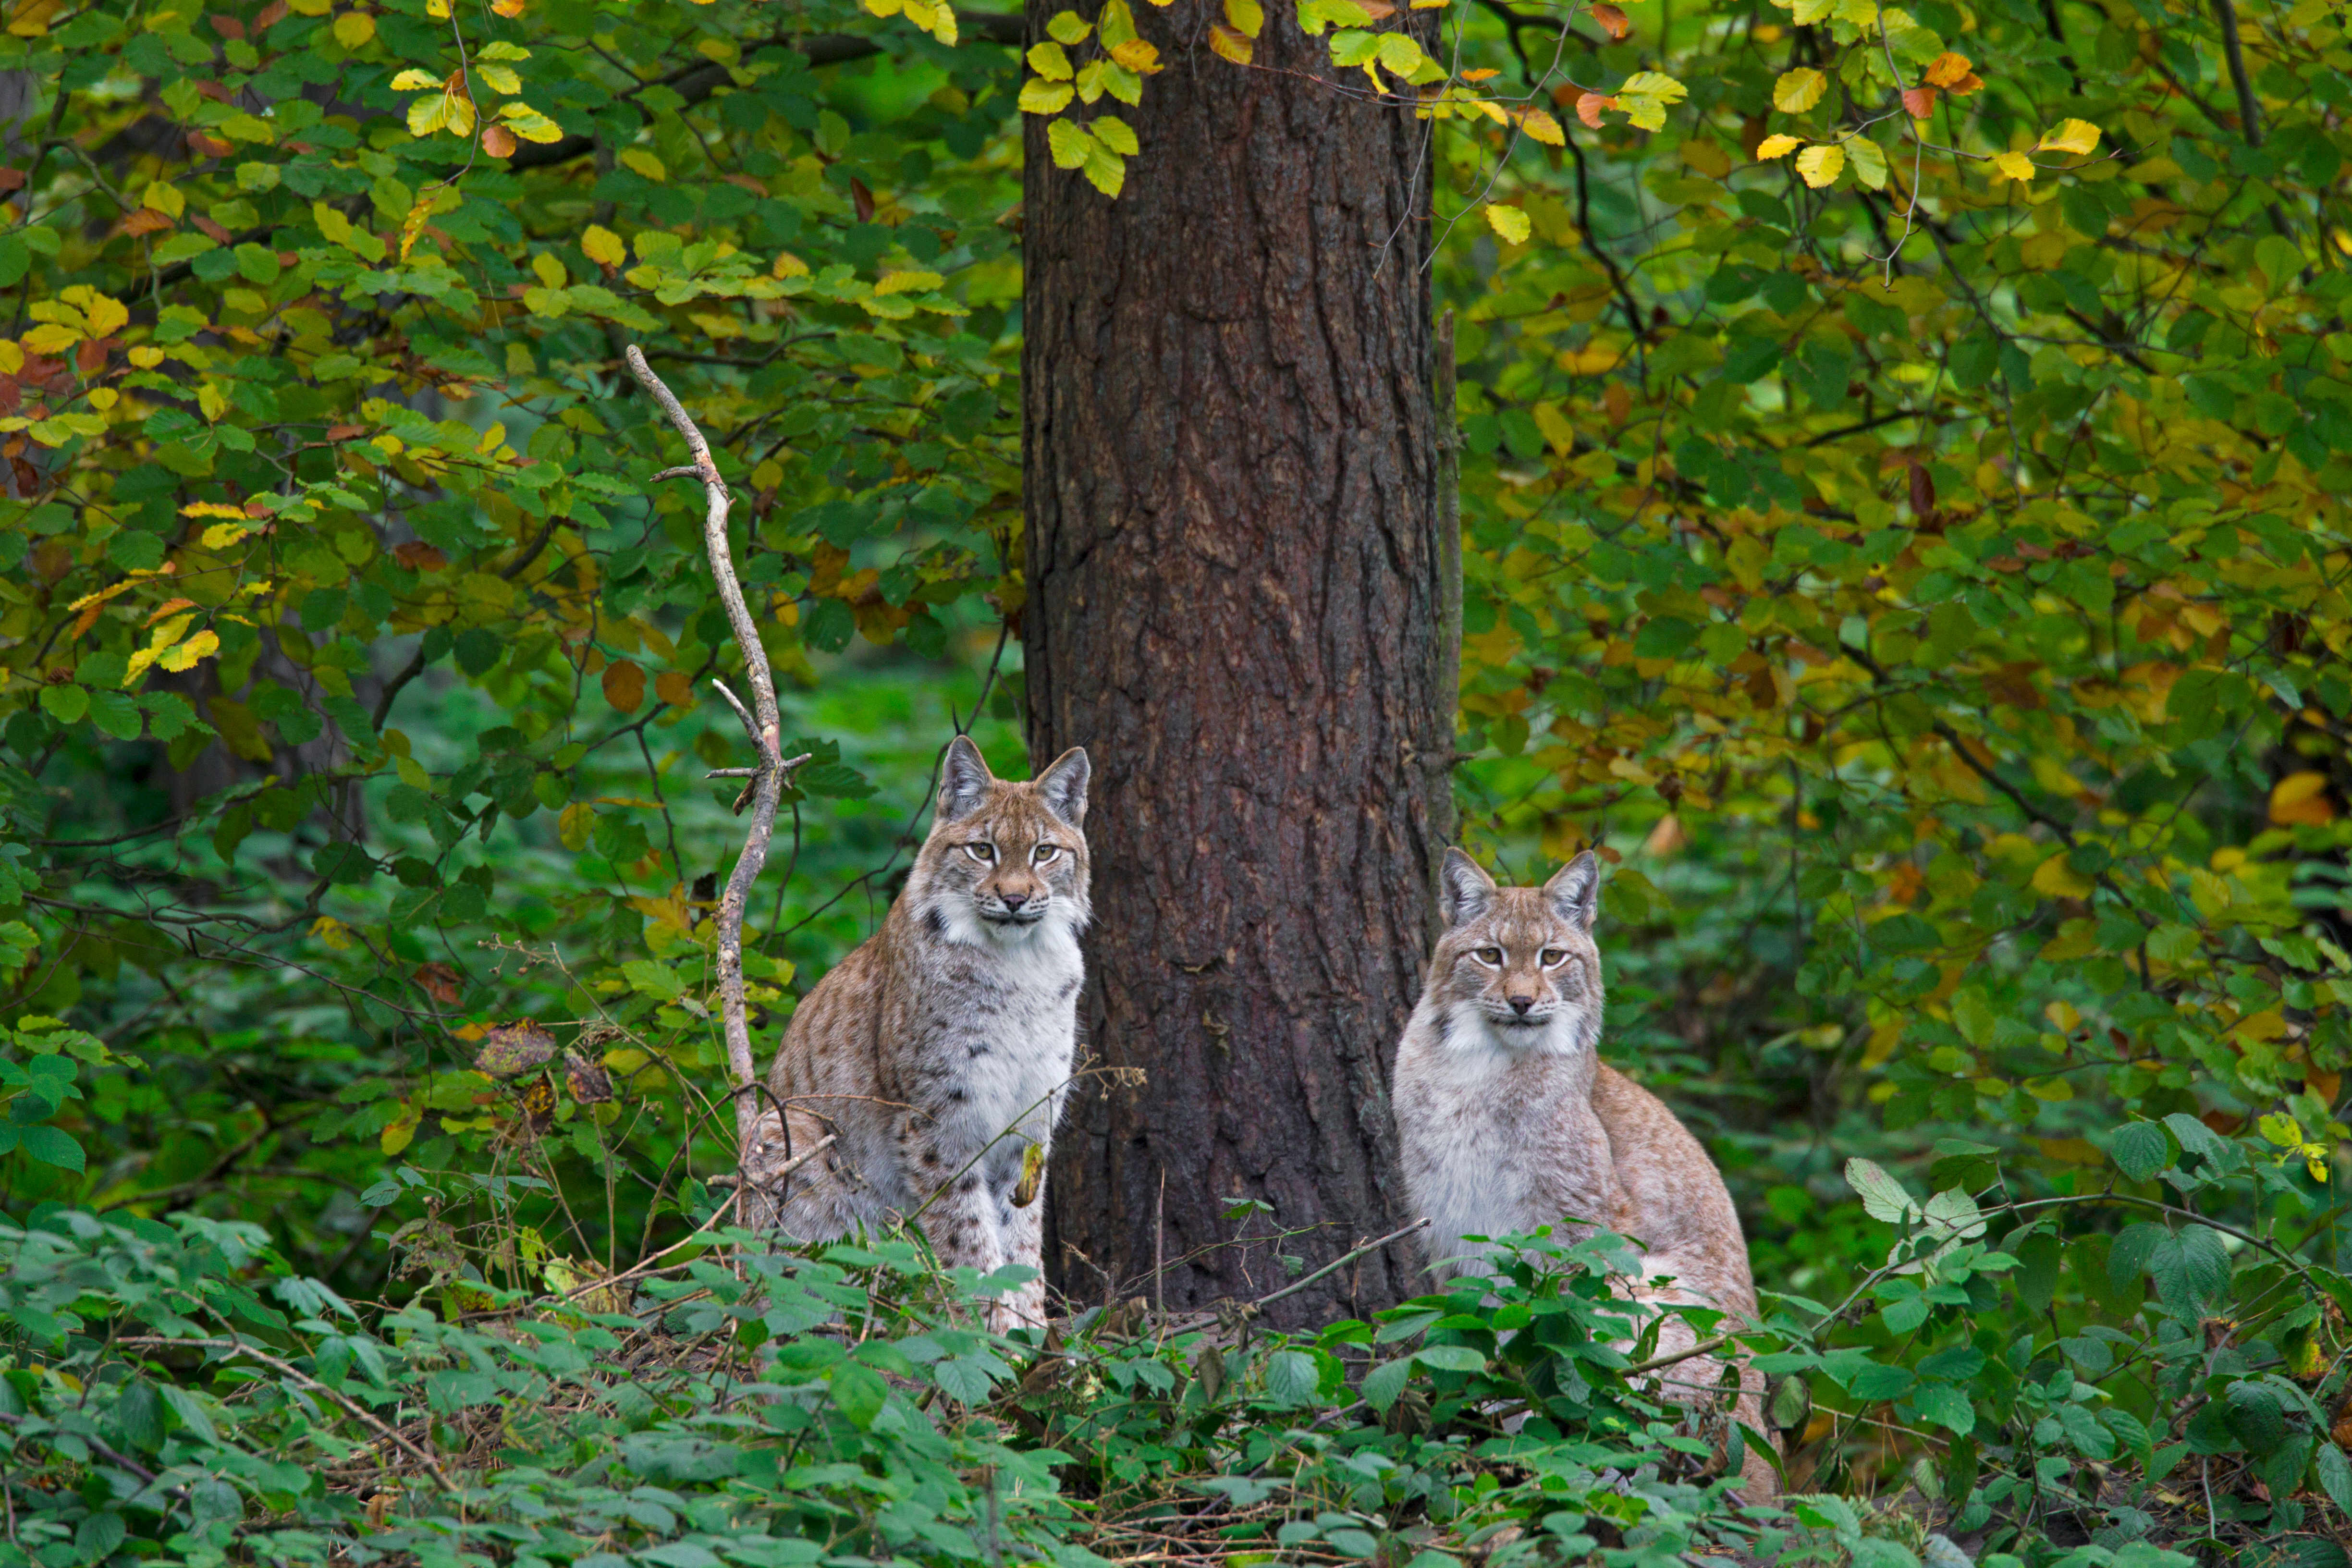 Pair of lynx in a German forest